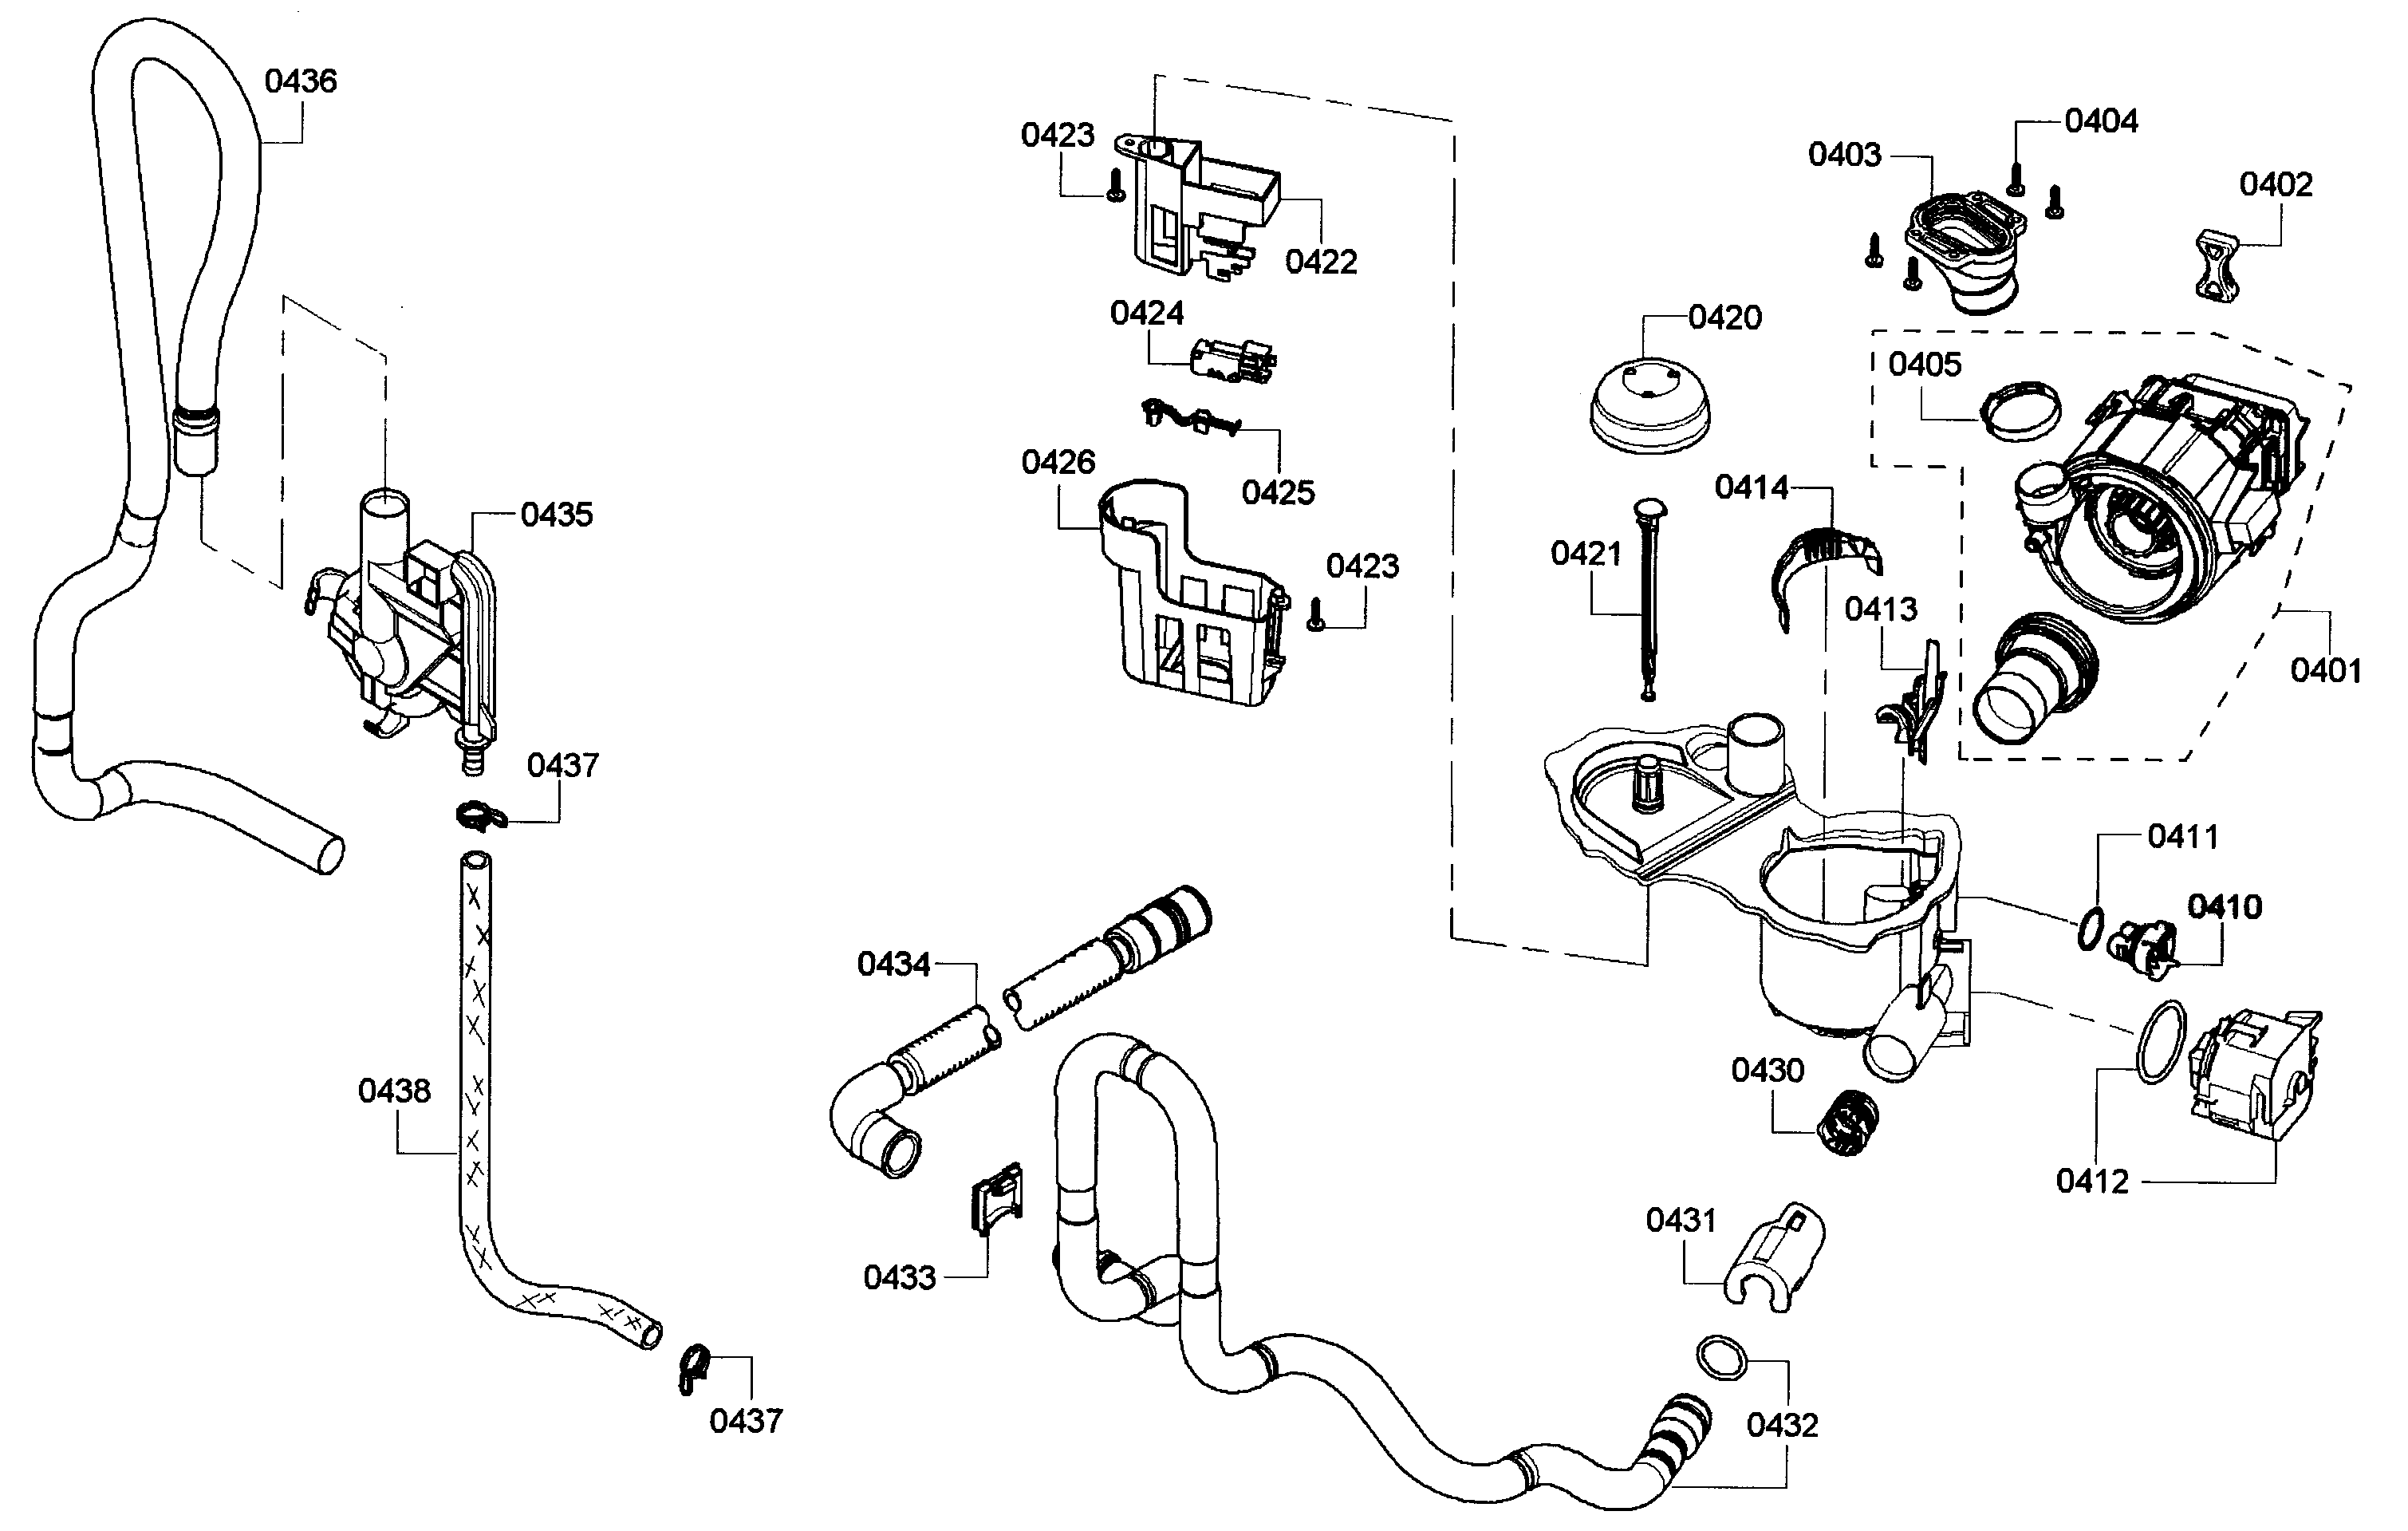 PUMP Diagram & Parts List for Model 63013913010 Kenmore